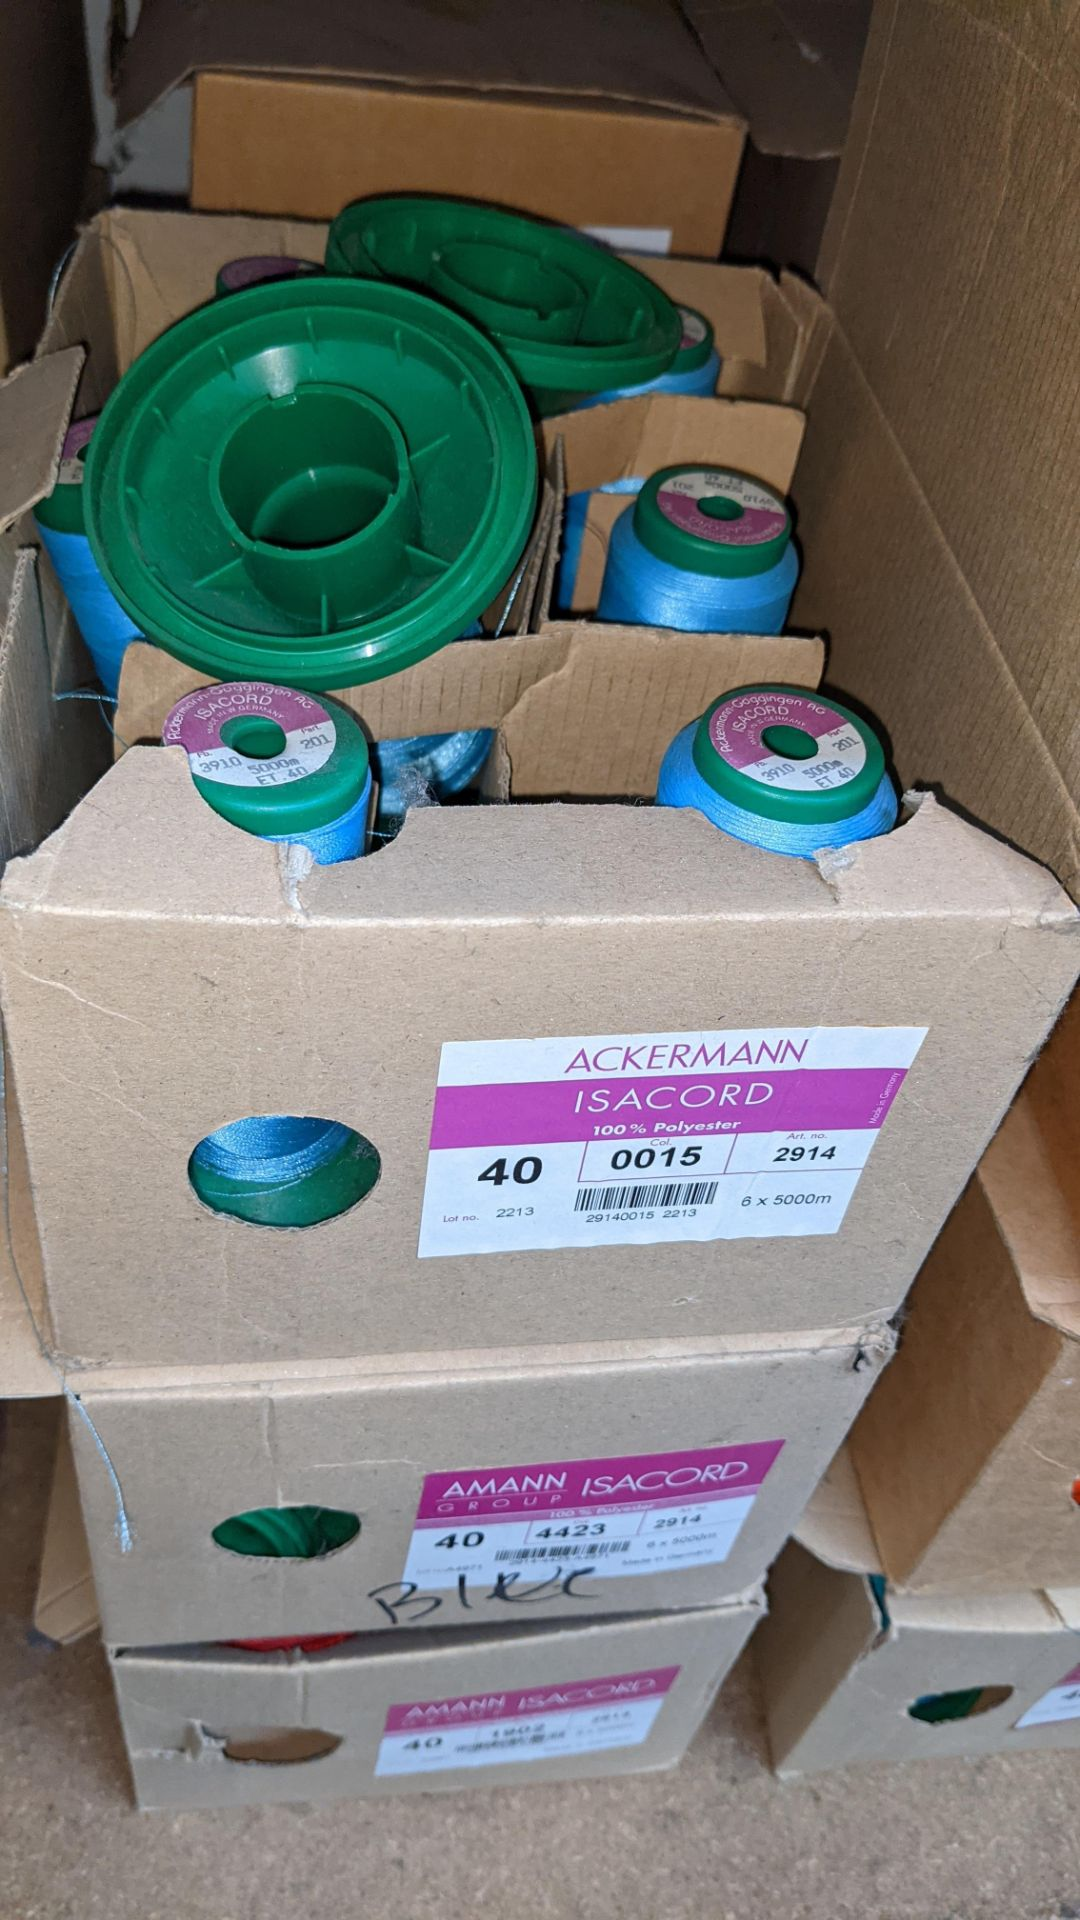 6 boxes of Ackermann & Amann Group Isacord polyester No. 40 embroidery thread - Image 4 of 6